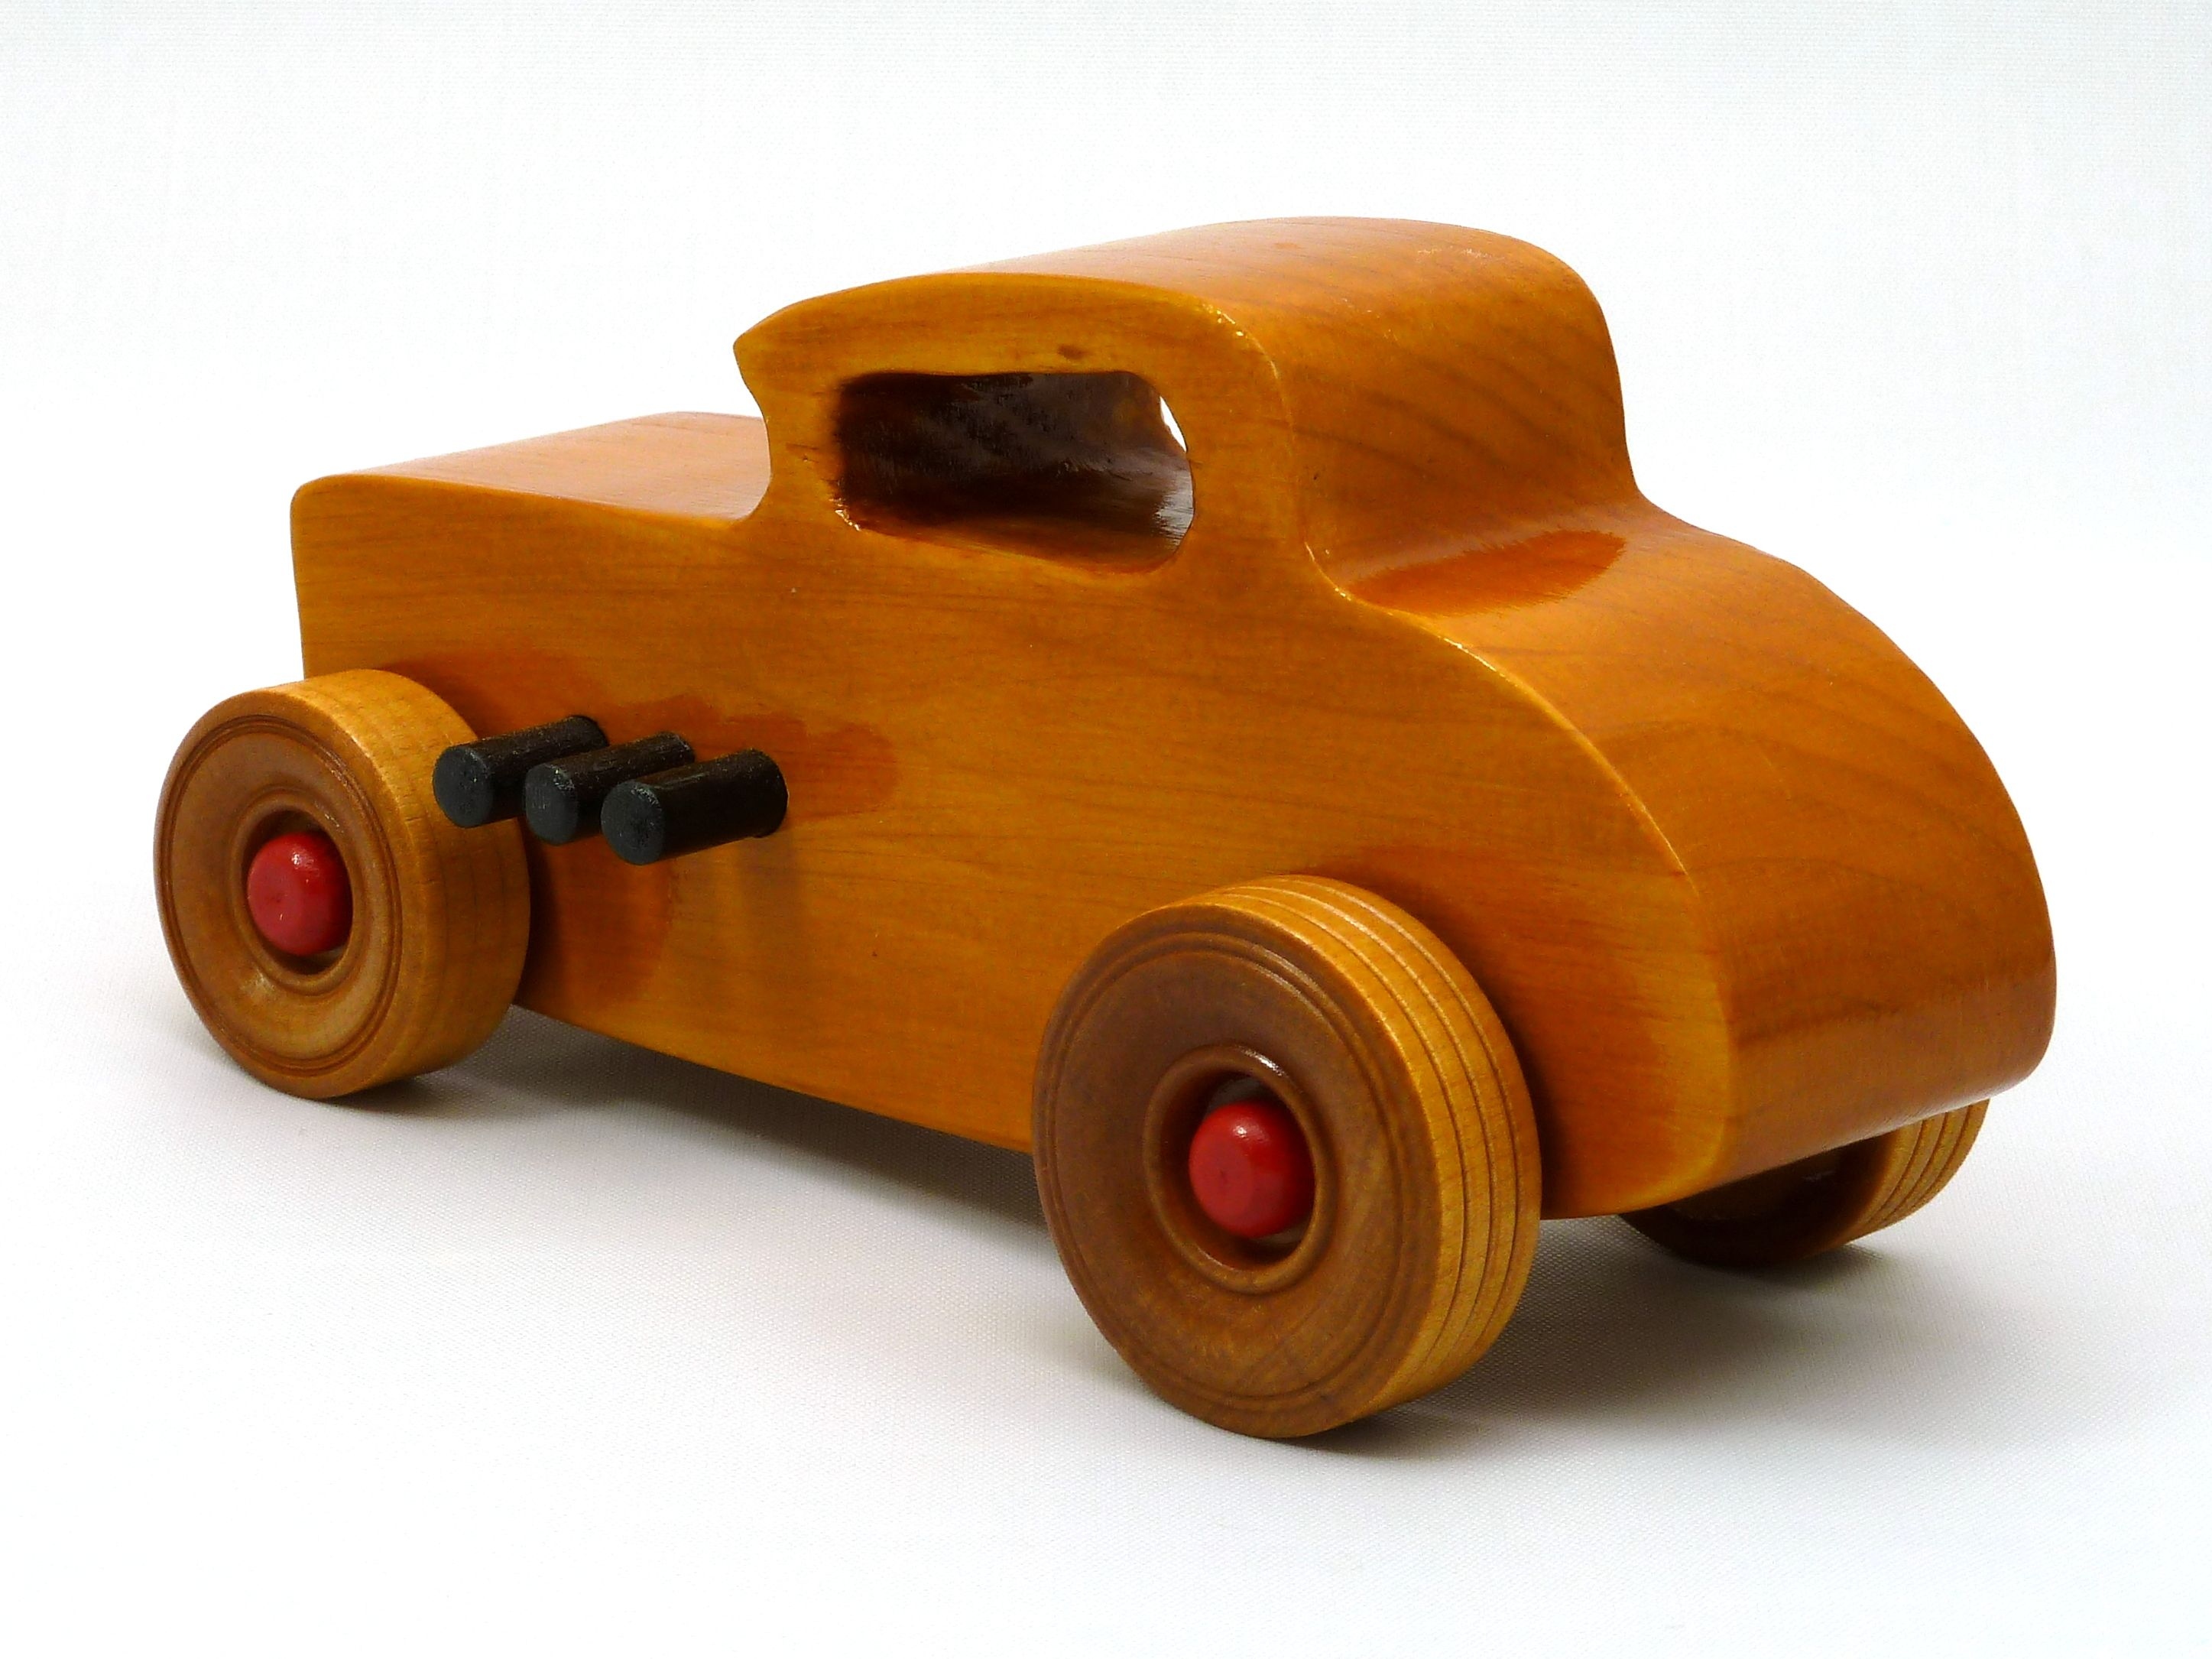 Little car toys  Handmade Handcrafted Wooden Toy Car Hot Rod Freaky Ford  Deuce